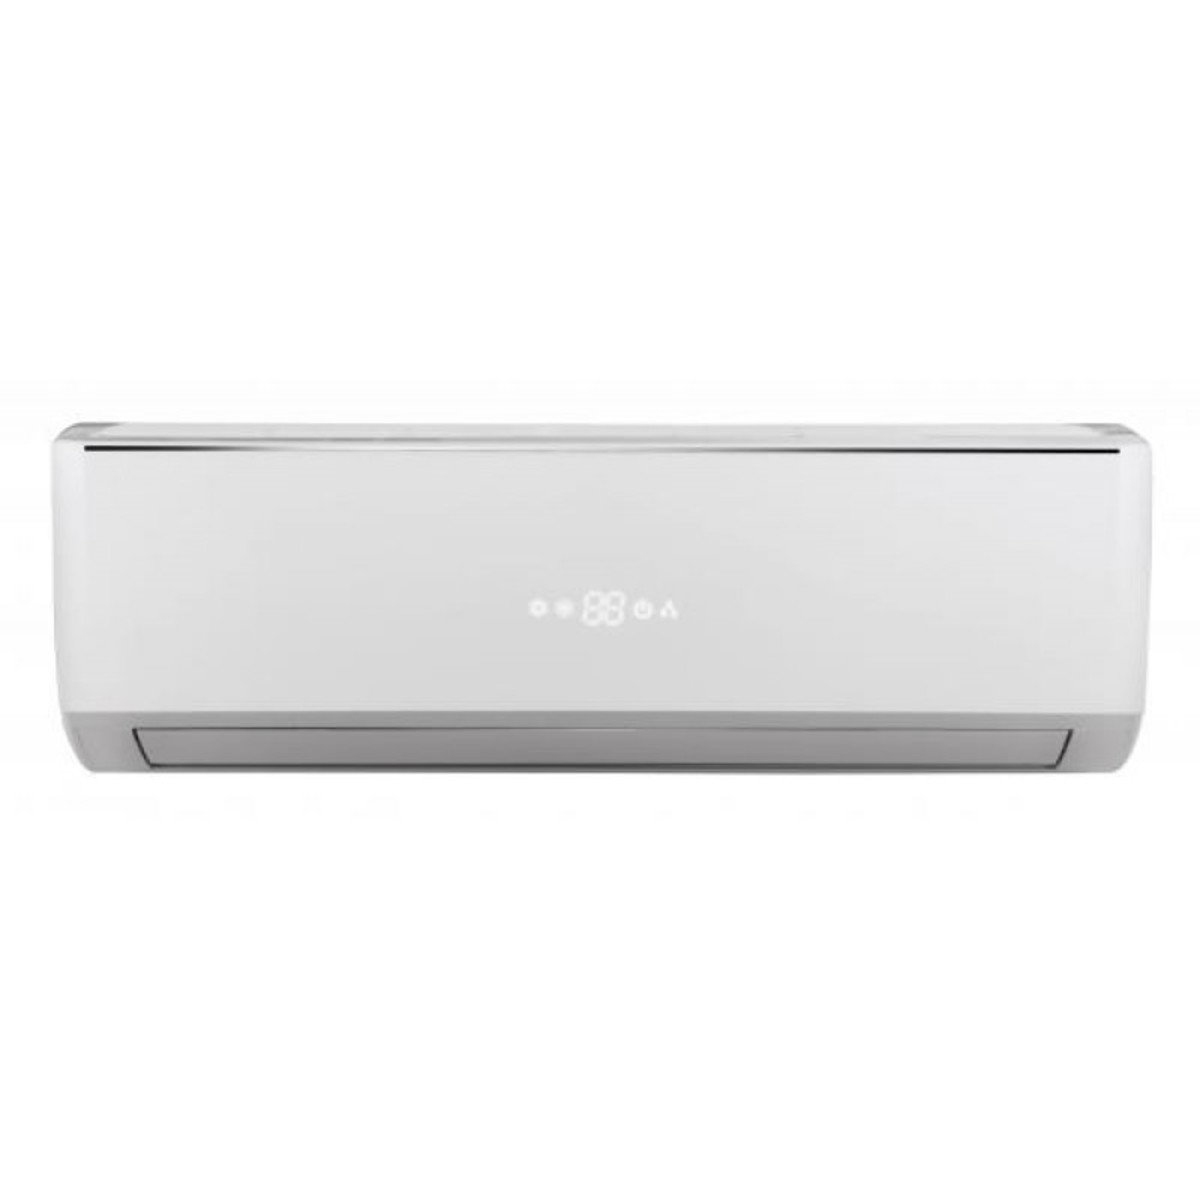 GIM12A 1.5HP R410A Reverse Cycle Split Type Air Conditioner  Hong Kong Warranty Genuine Products